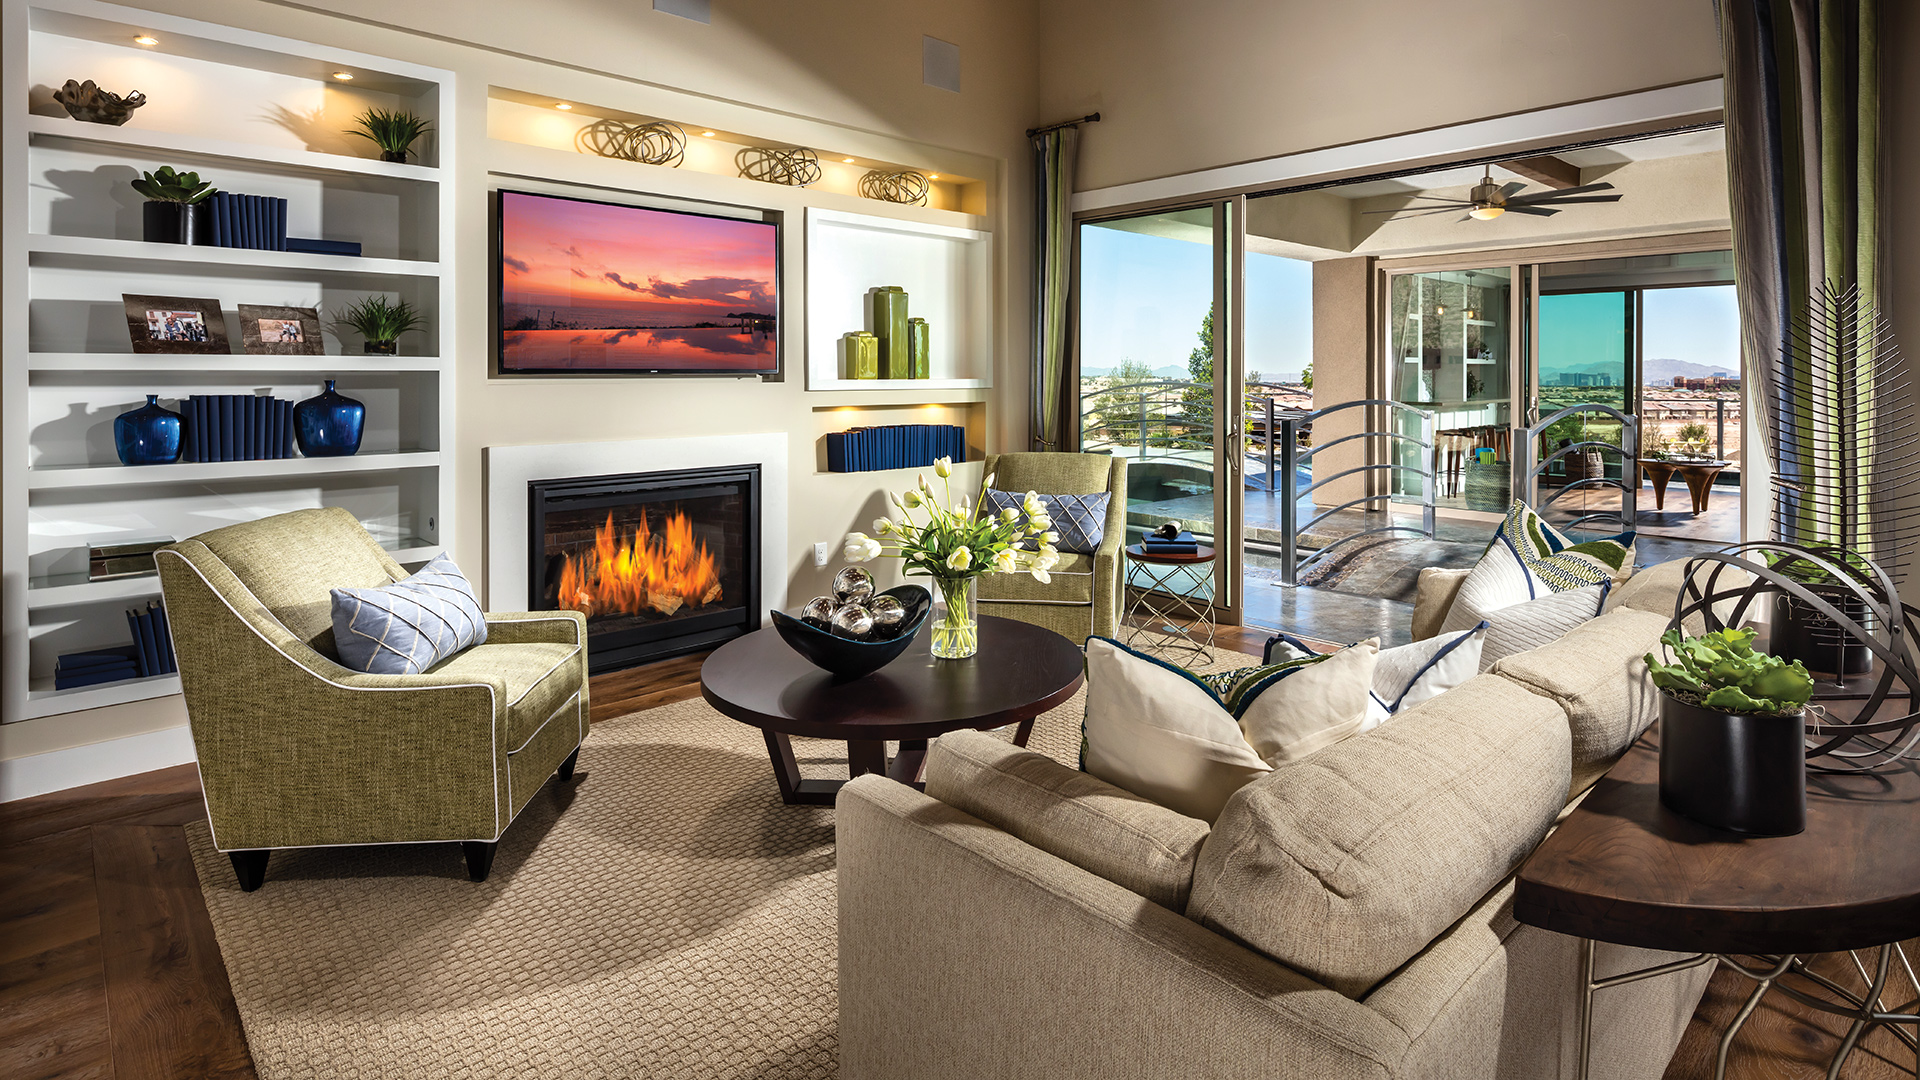 The open floor plan is great for hosting events of any variety